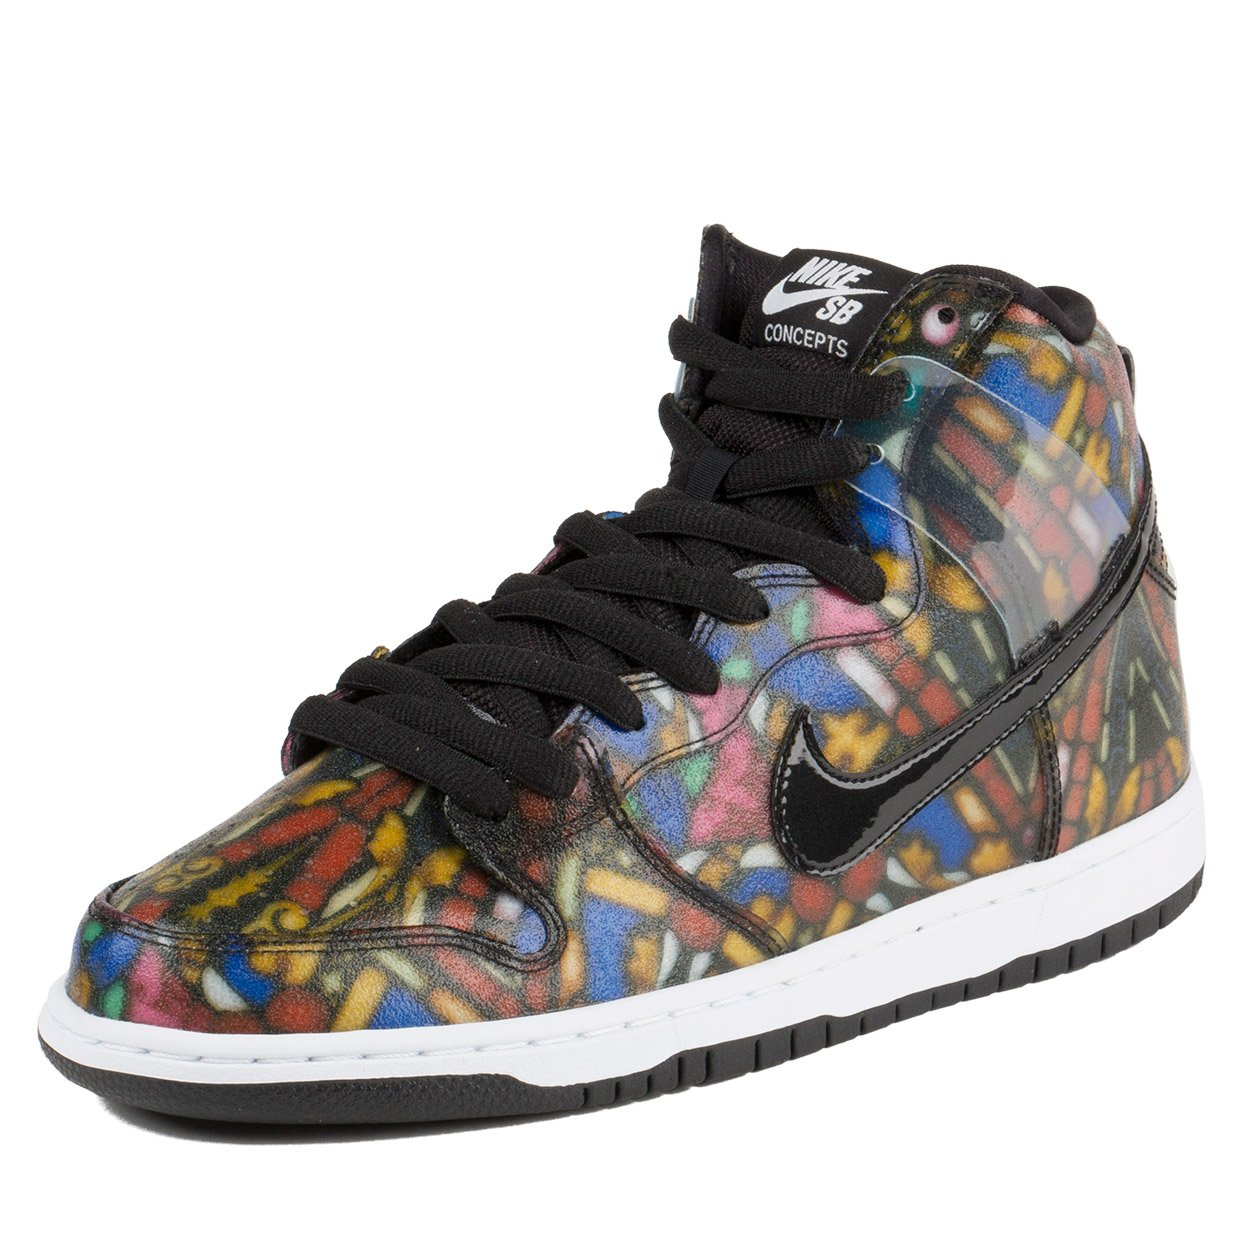 Nike Dunk HI Pro SB - 8 ''Concepts Stained Glass'' - 313171 606 by NIKE